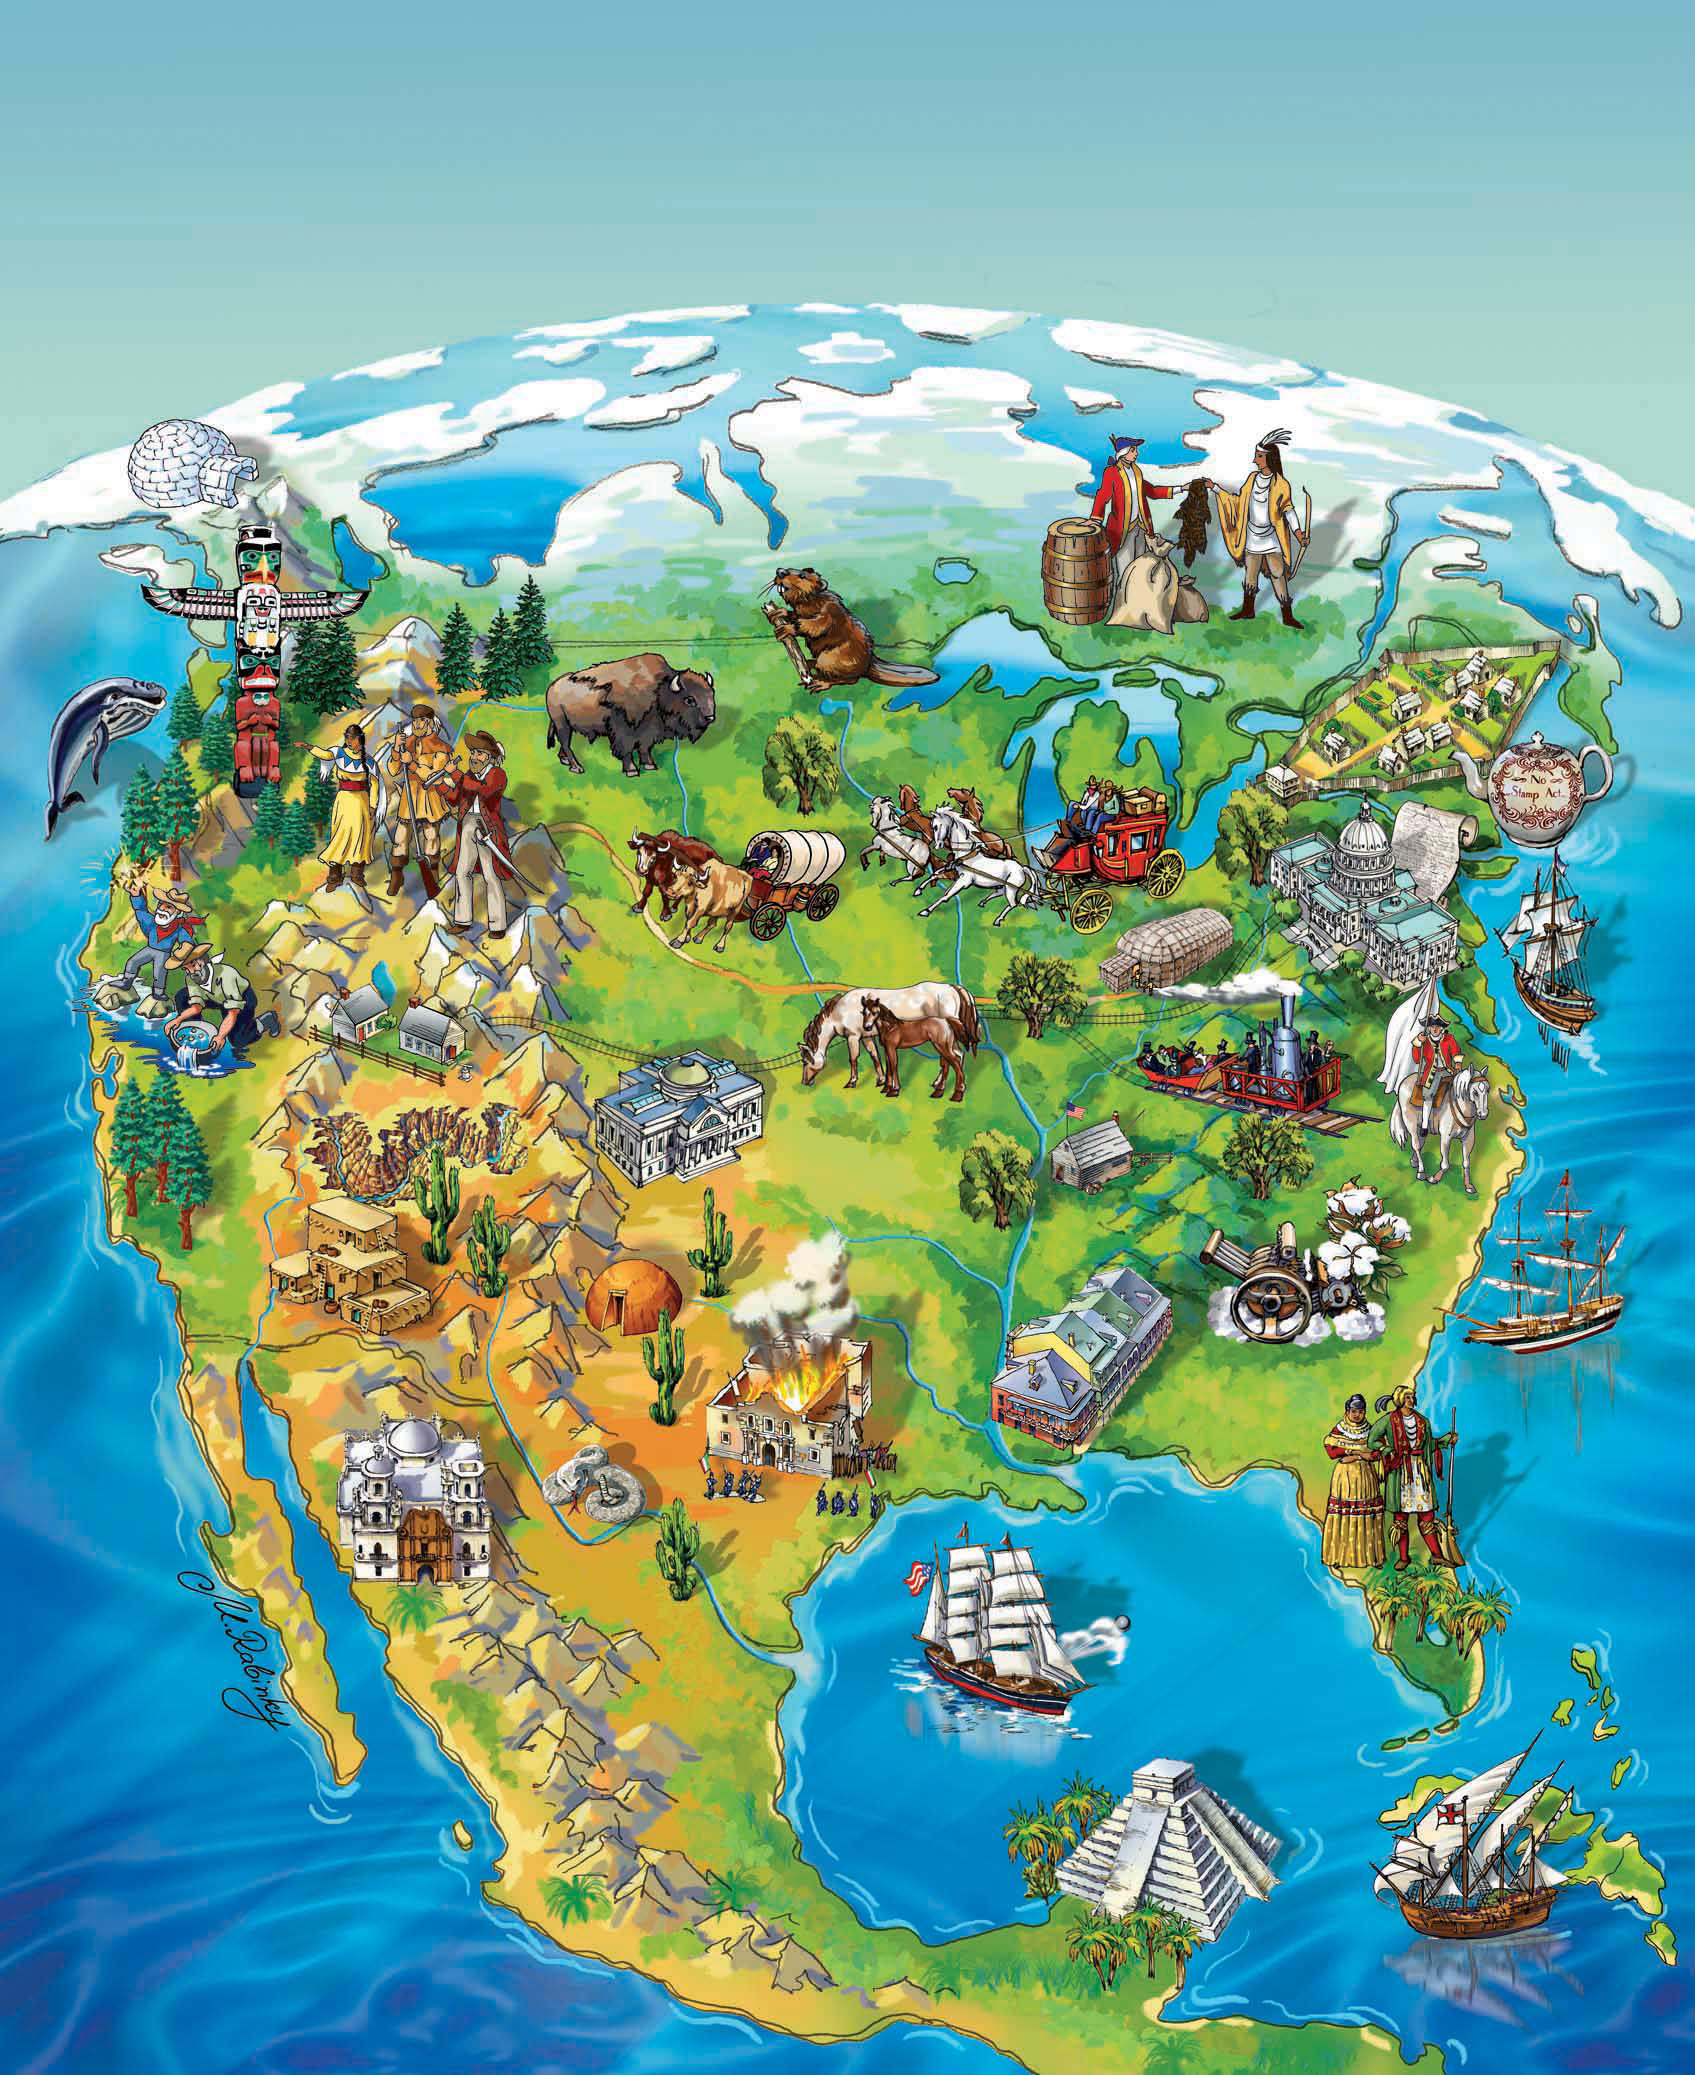 illustrated map for social studies book cover for 5th grade